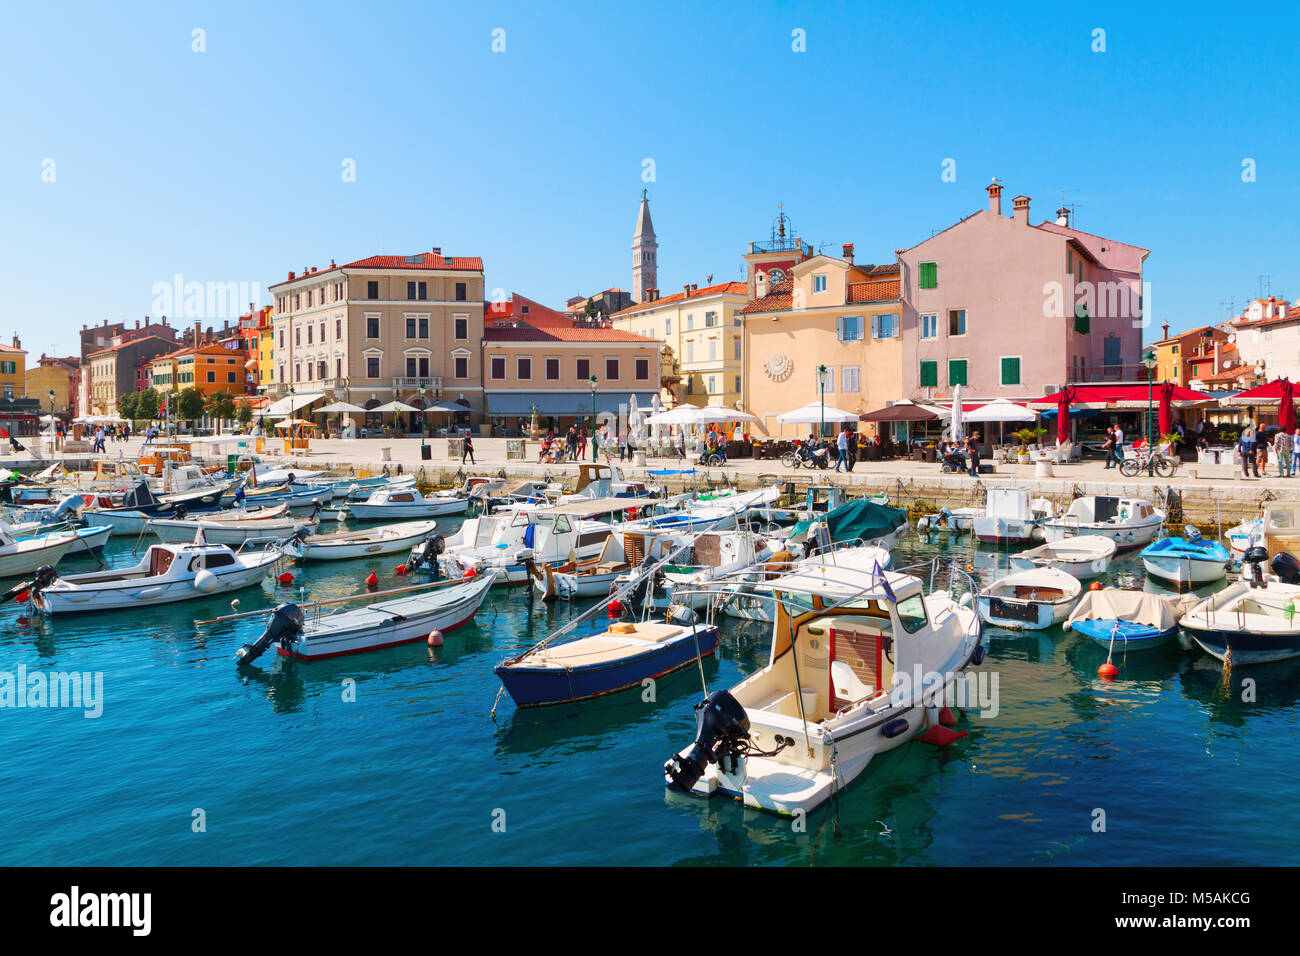 Beautiful and cozy medieval town of Rovinj, colorful with houses and church the harbor in Croatia, Europe Stock Photo